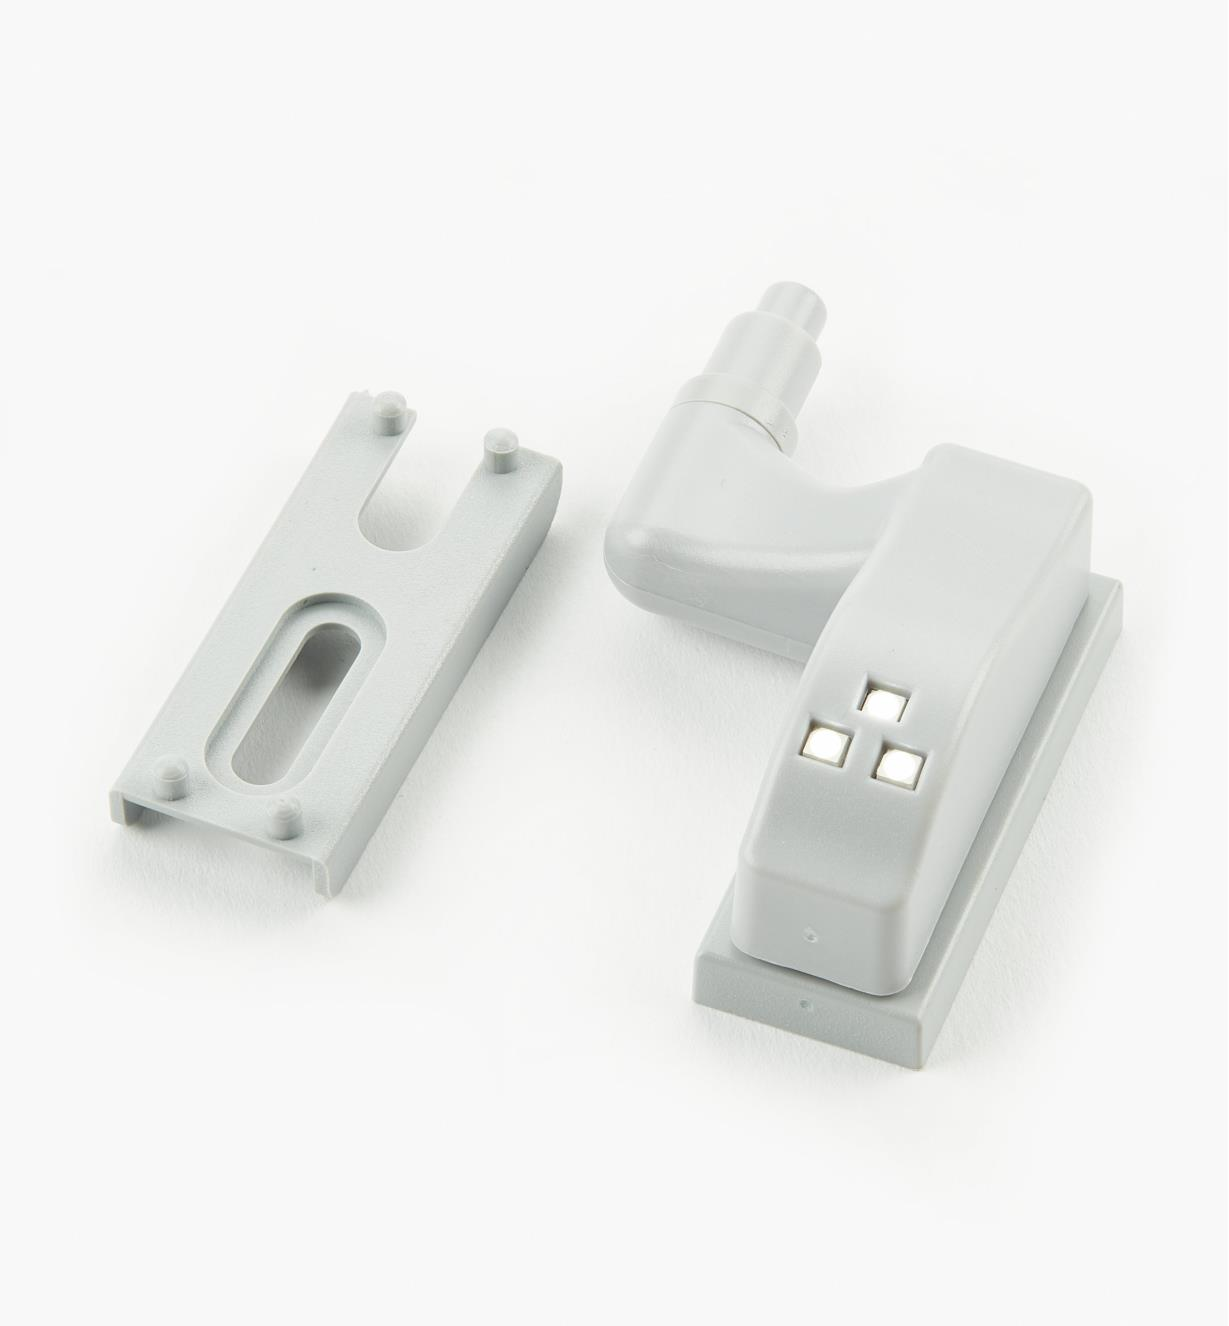 00U0105 - Wireless Hinge LED